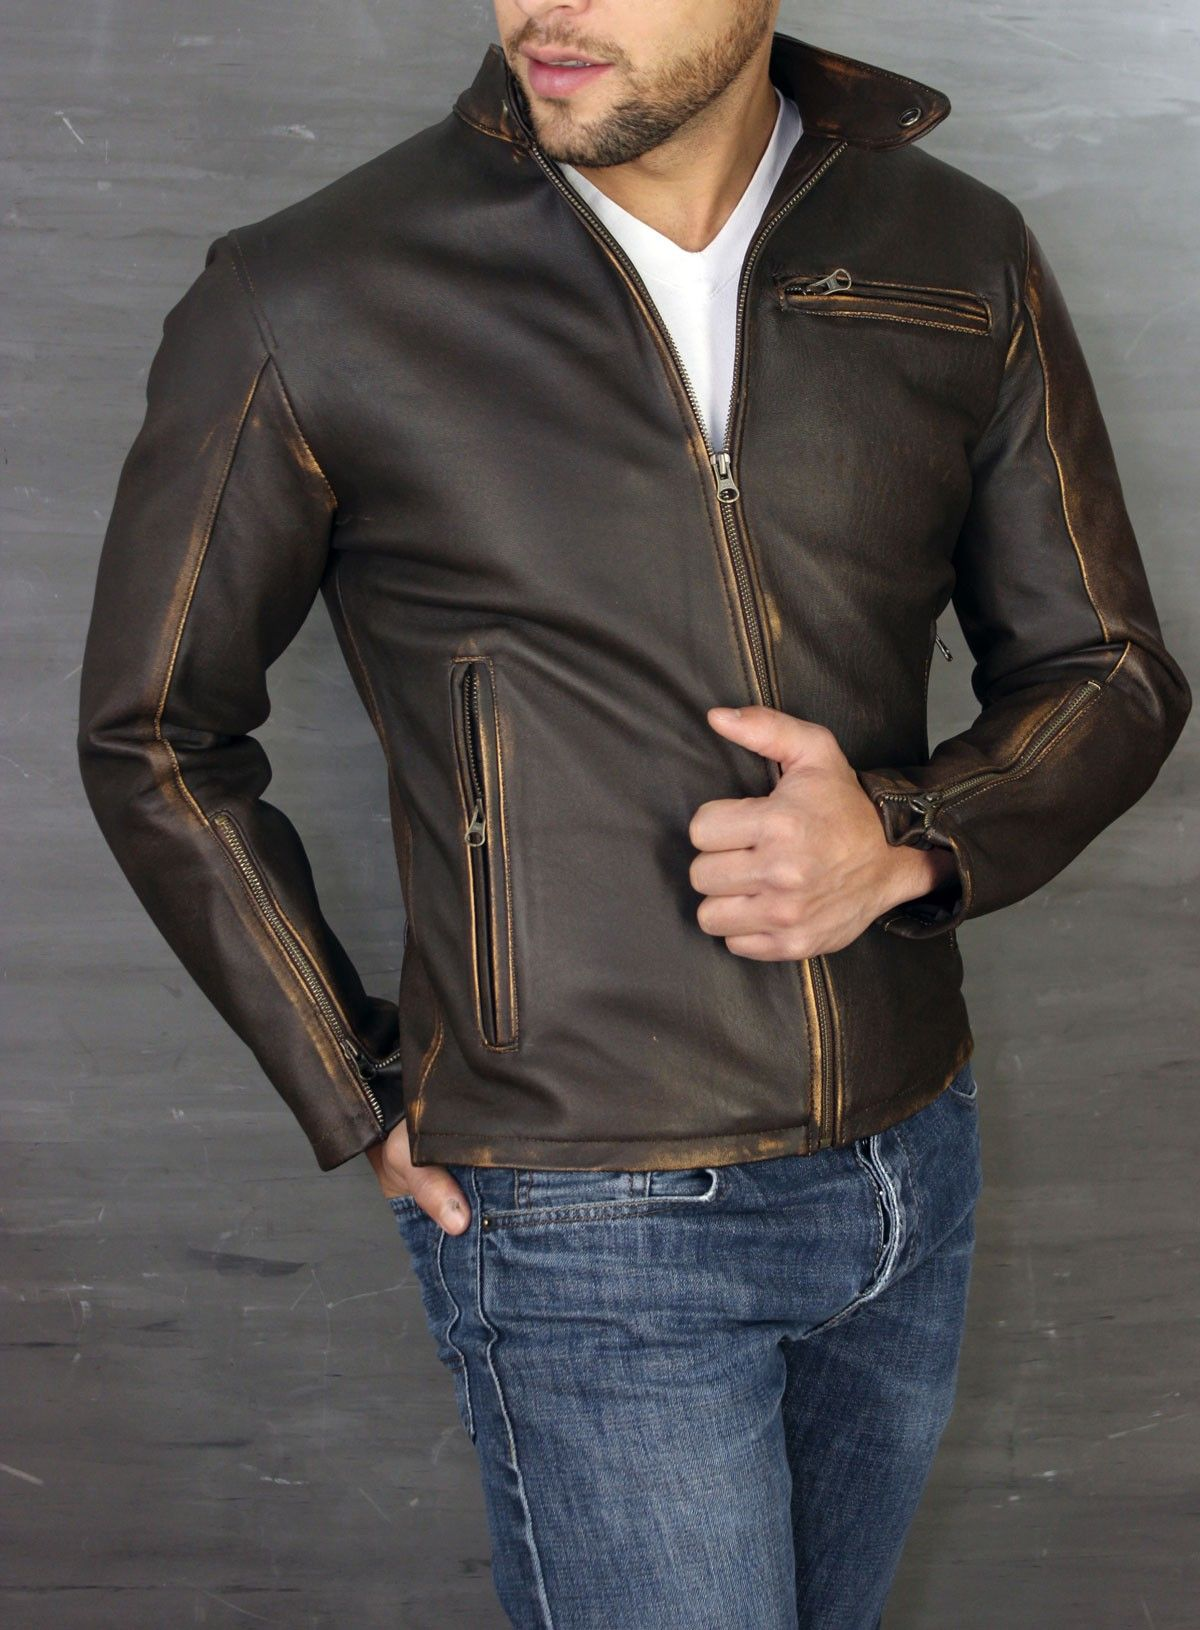 3a162c44 R79 Leather Jacket Distressed Brown Vintage Fit - Motorcycle Cafe ...